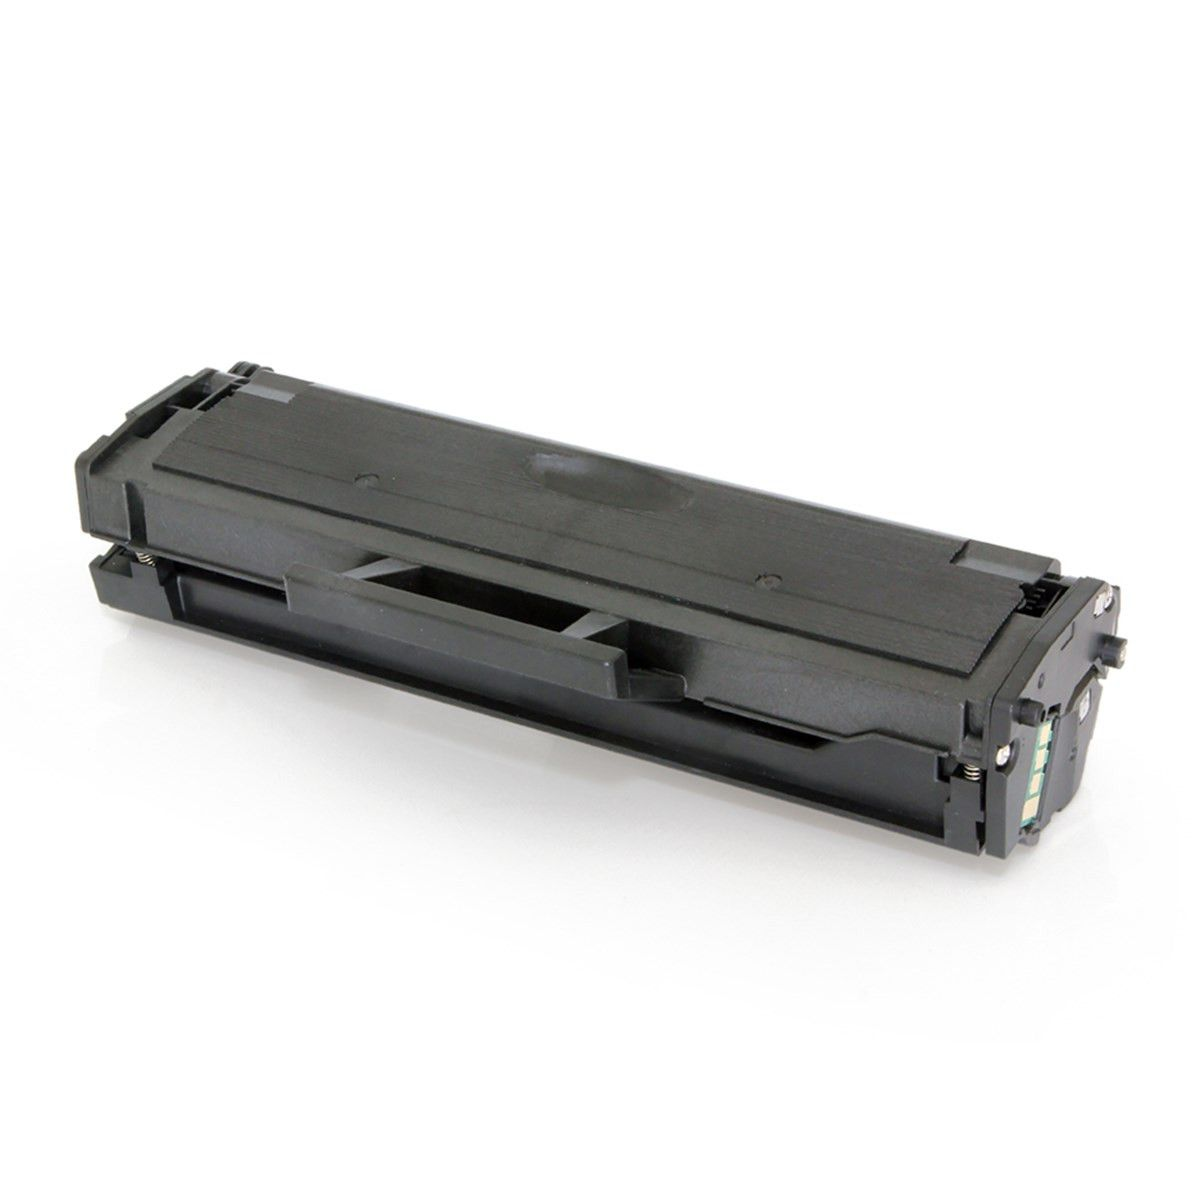 Toner Compatível Workcentre 3025 WC3025 PHASER 3020 | 106R02773